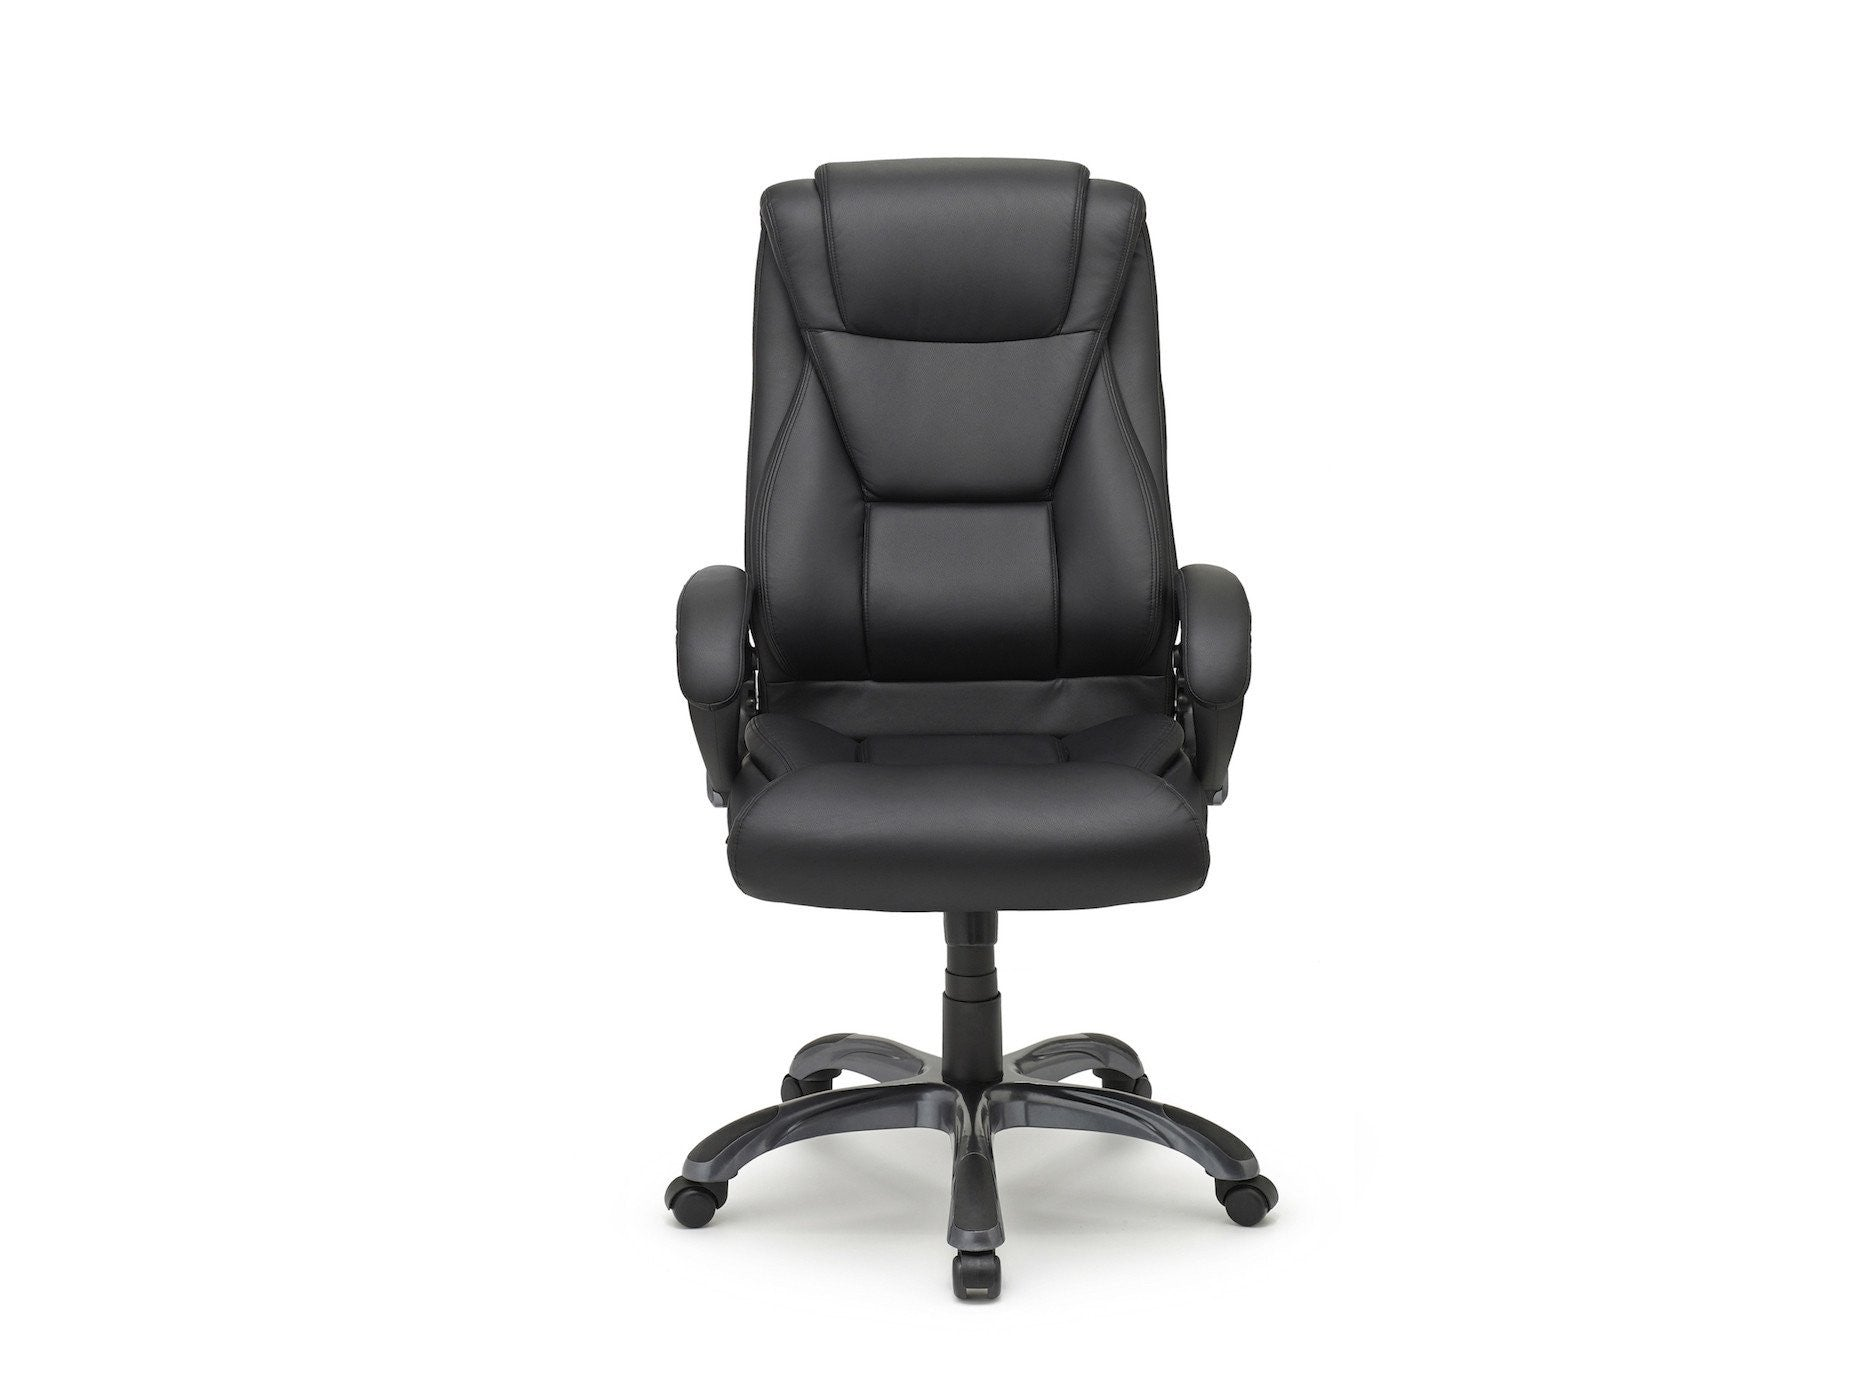 Executive Lumbar Support fice Chair Crossford